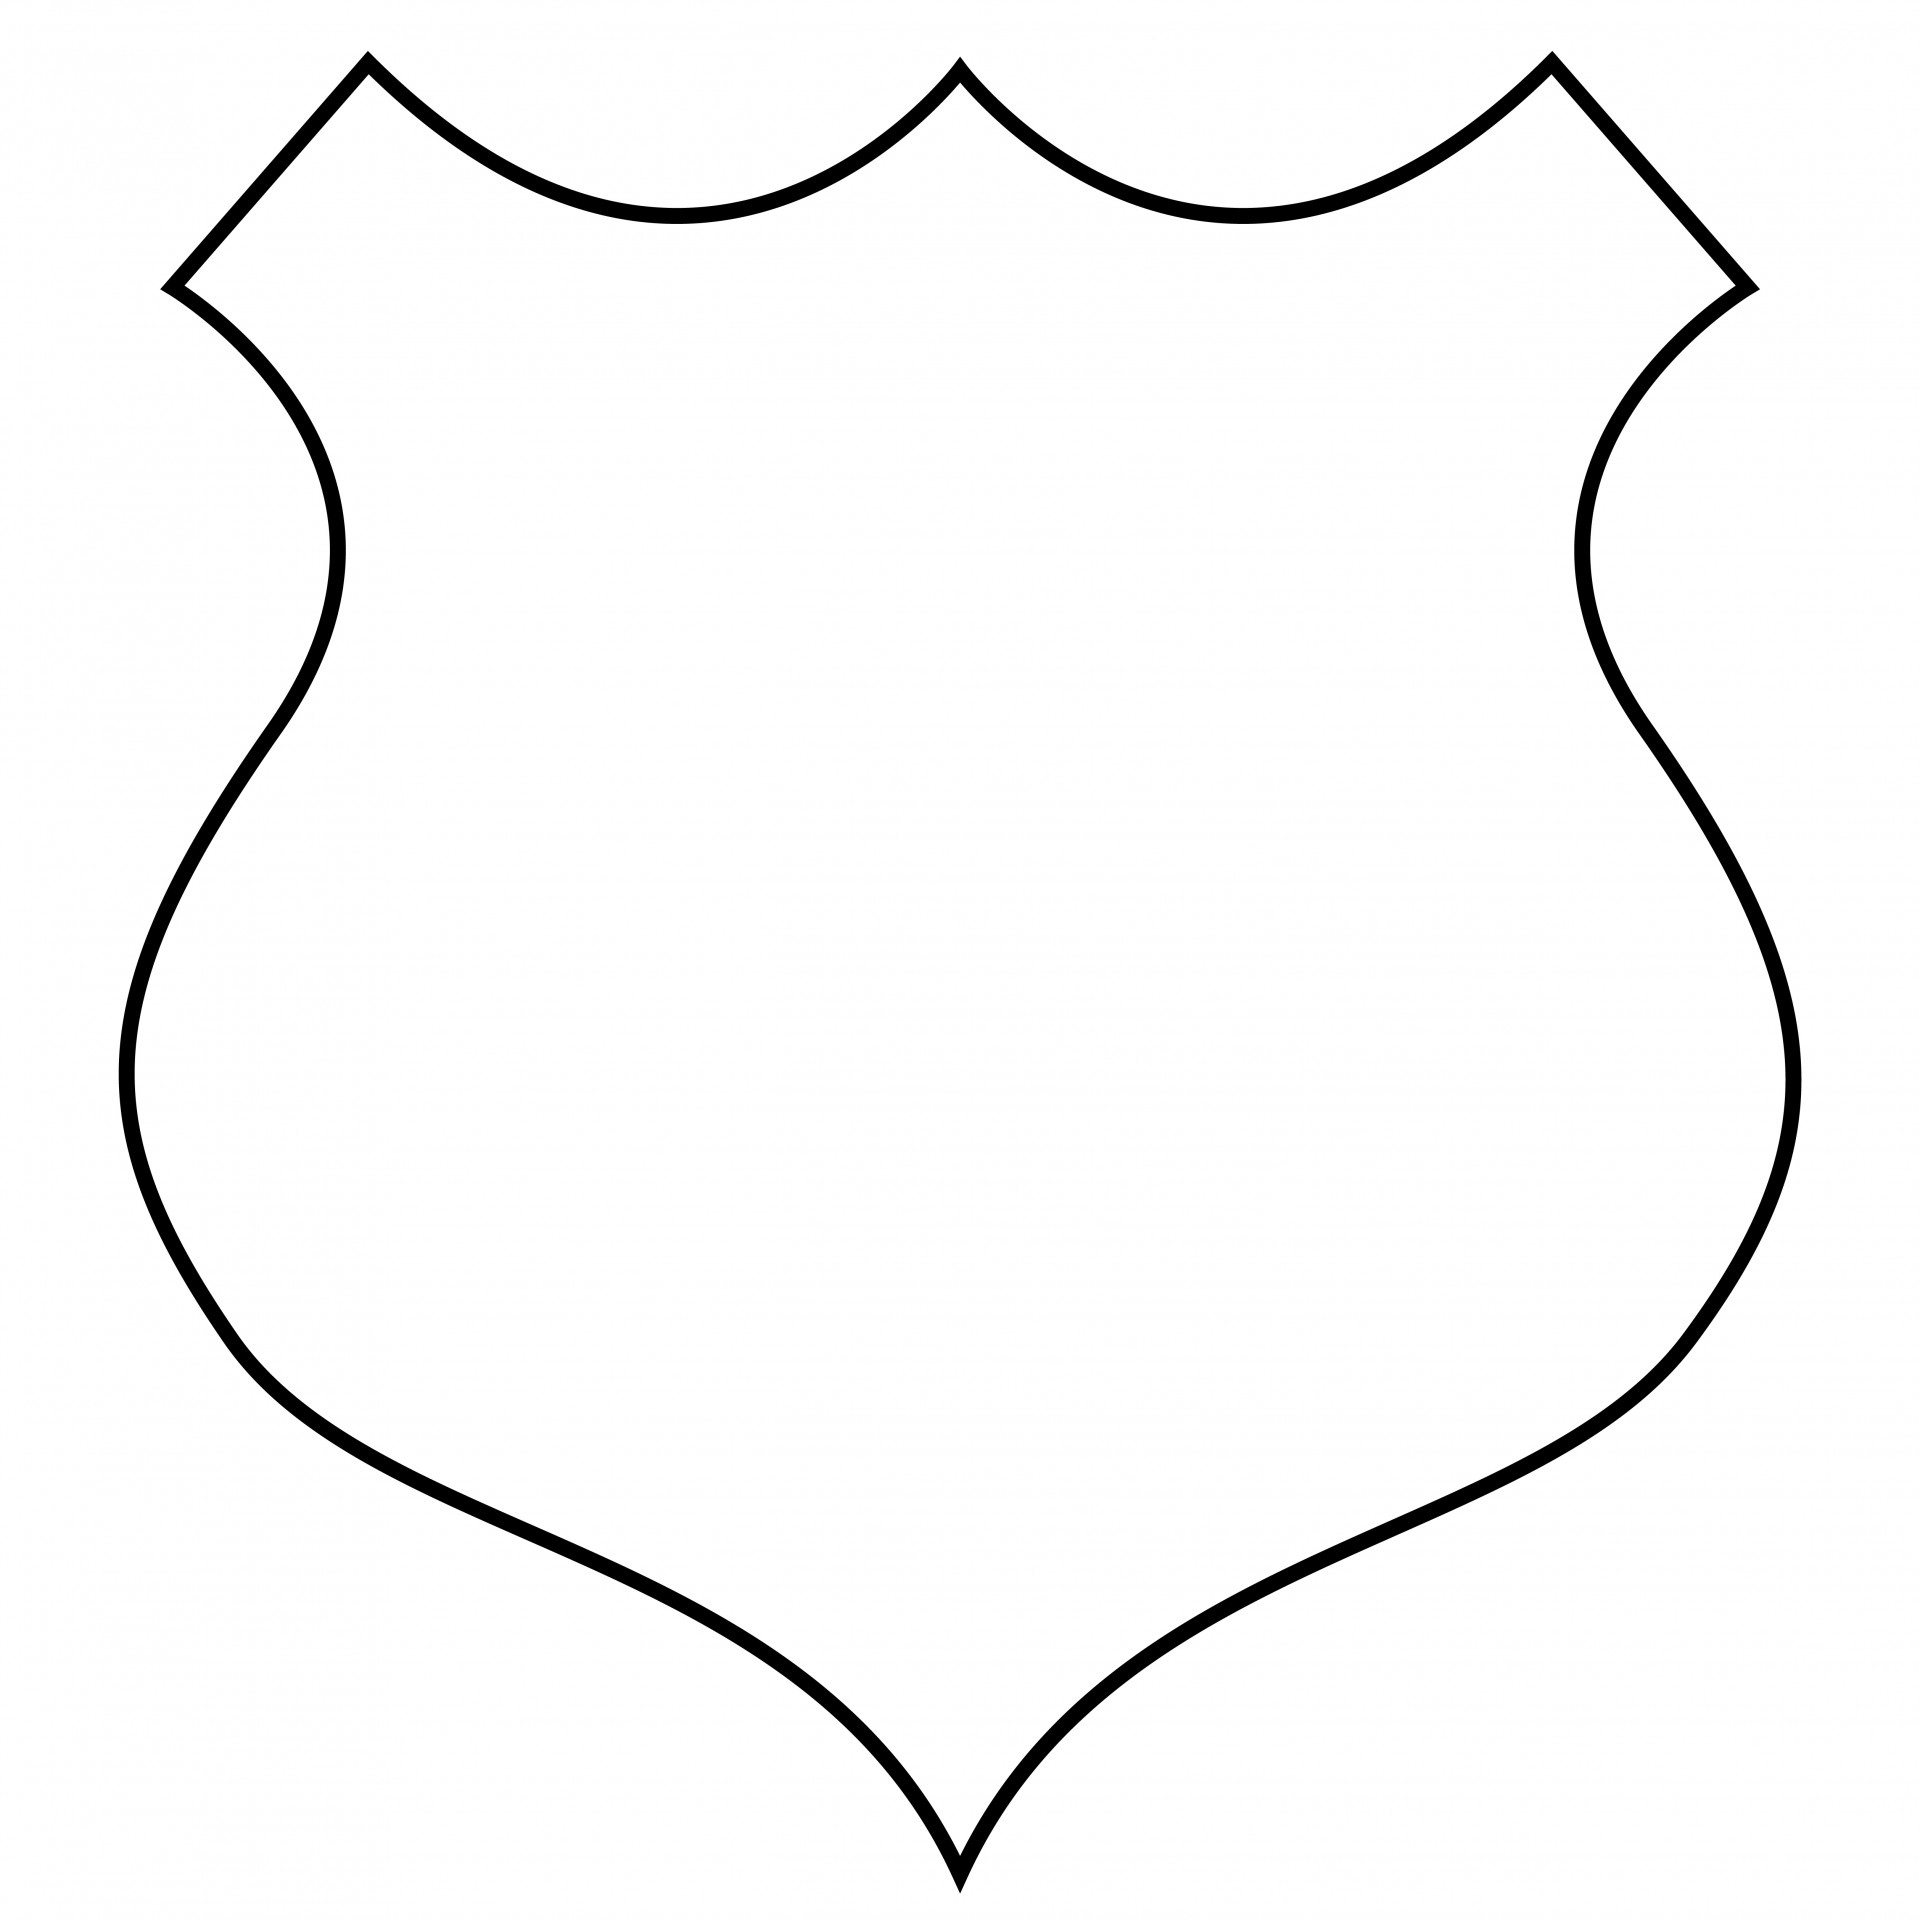 1920x1920 Badge, Shield Outline Clipart Free Stock Photo